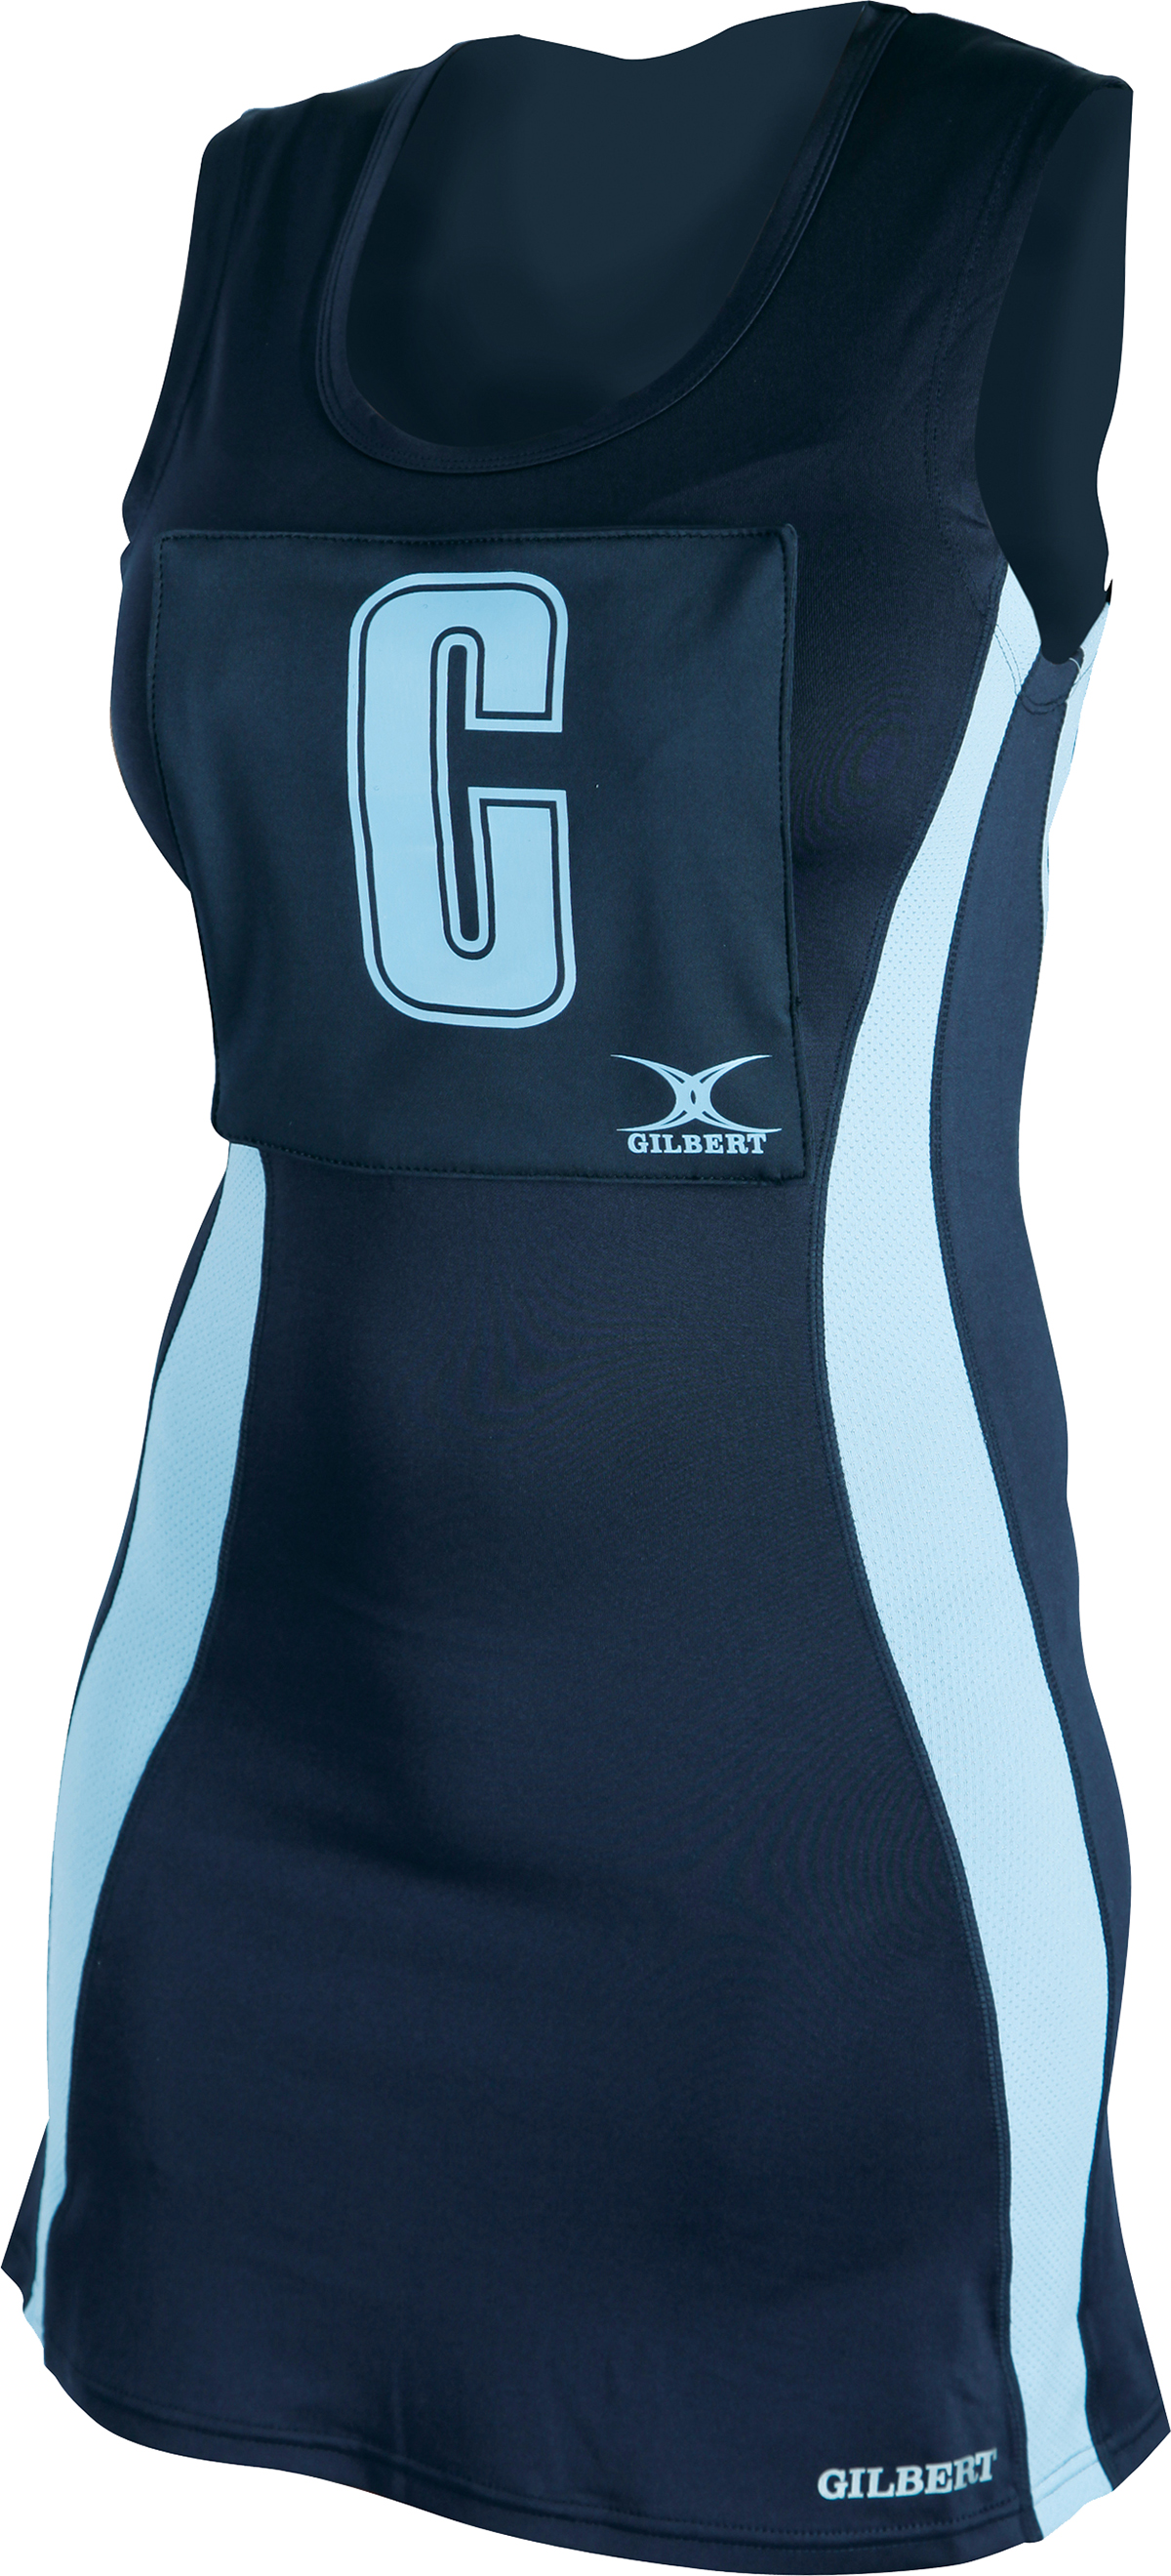 Hook Clothing Gilbert Eclipse Ii Hook And Loop Netball Dress Clothing